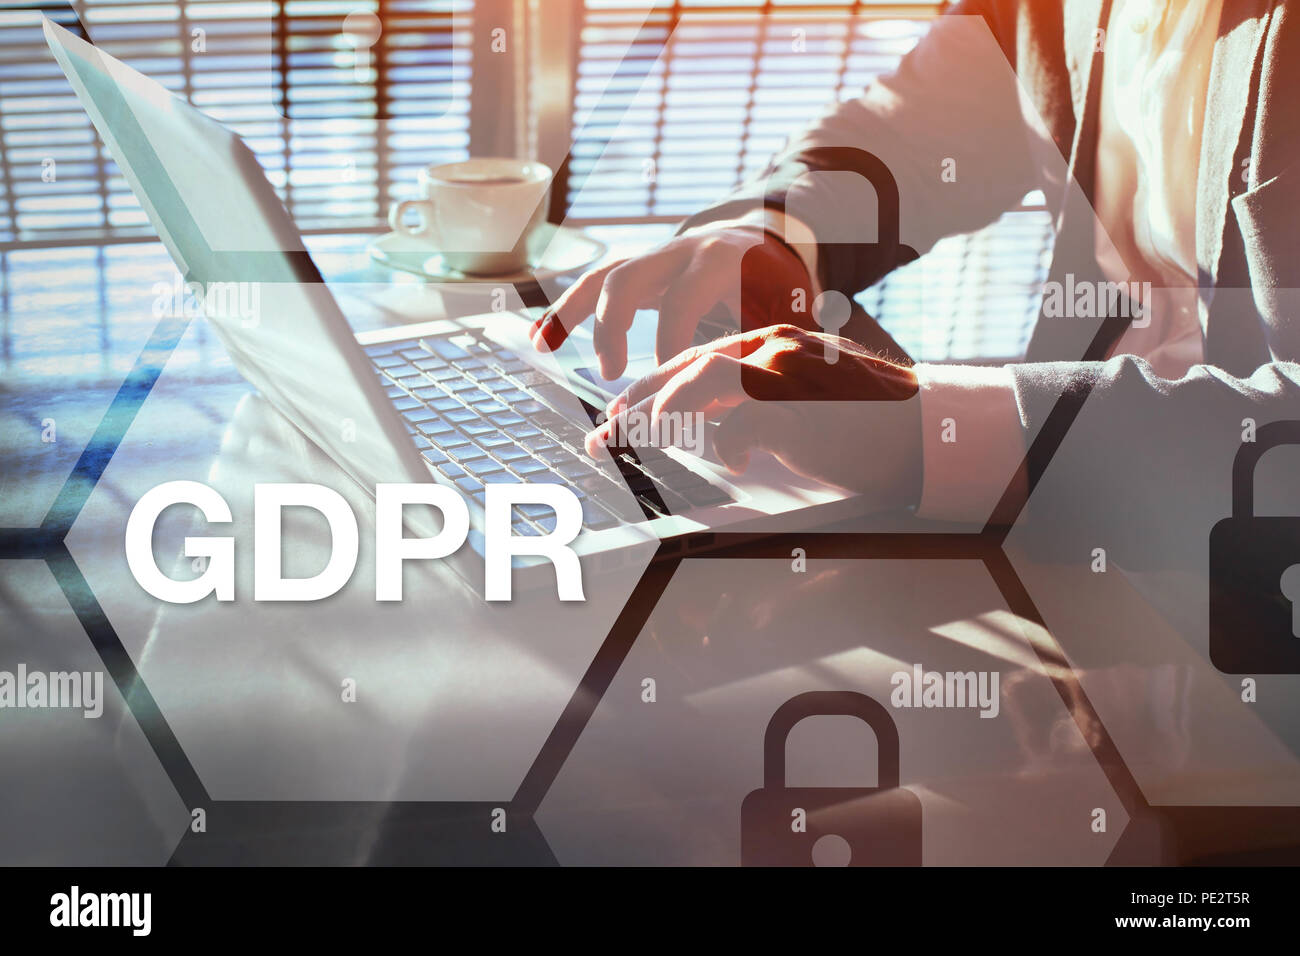 GDPR concept, general data protection regulation, information security concept - Stock Image